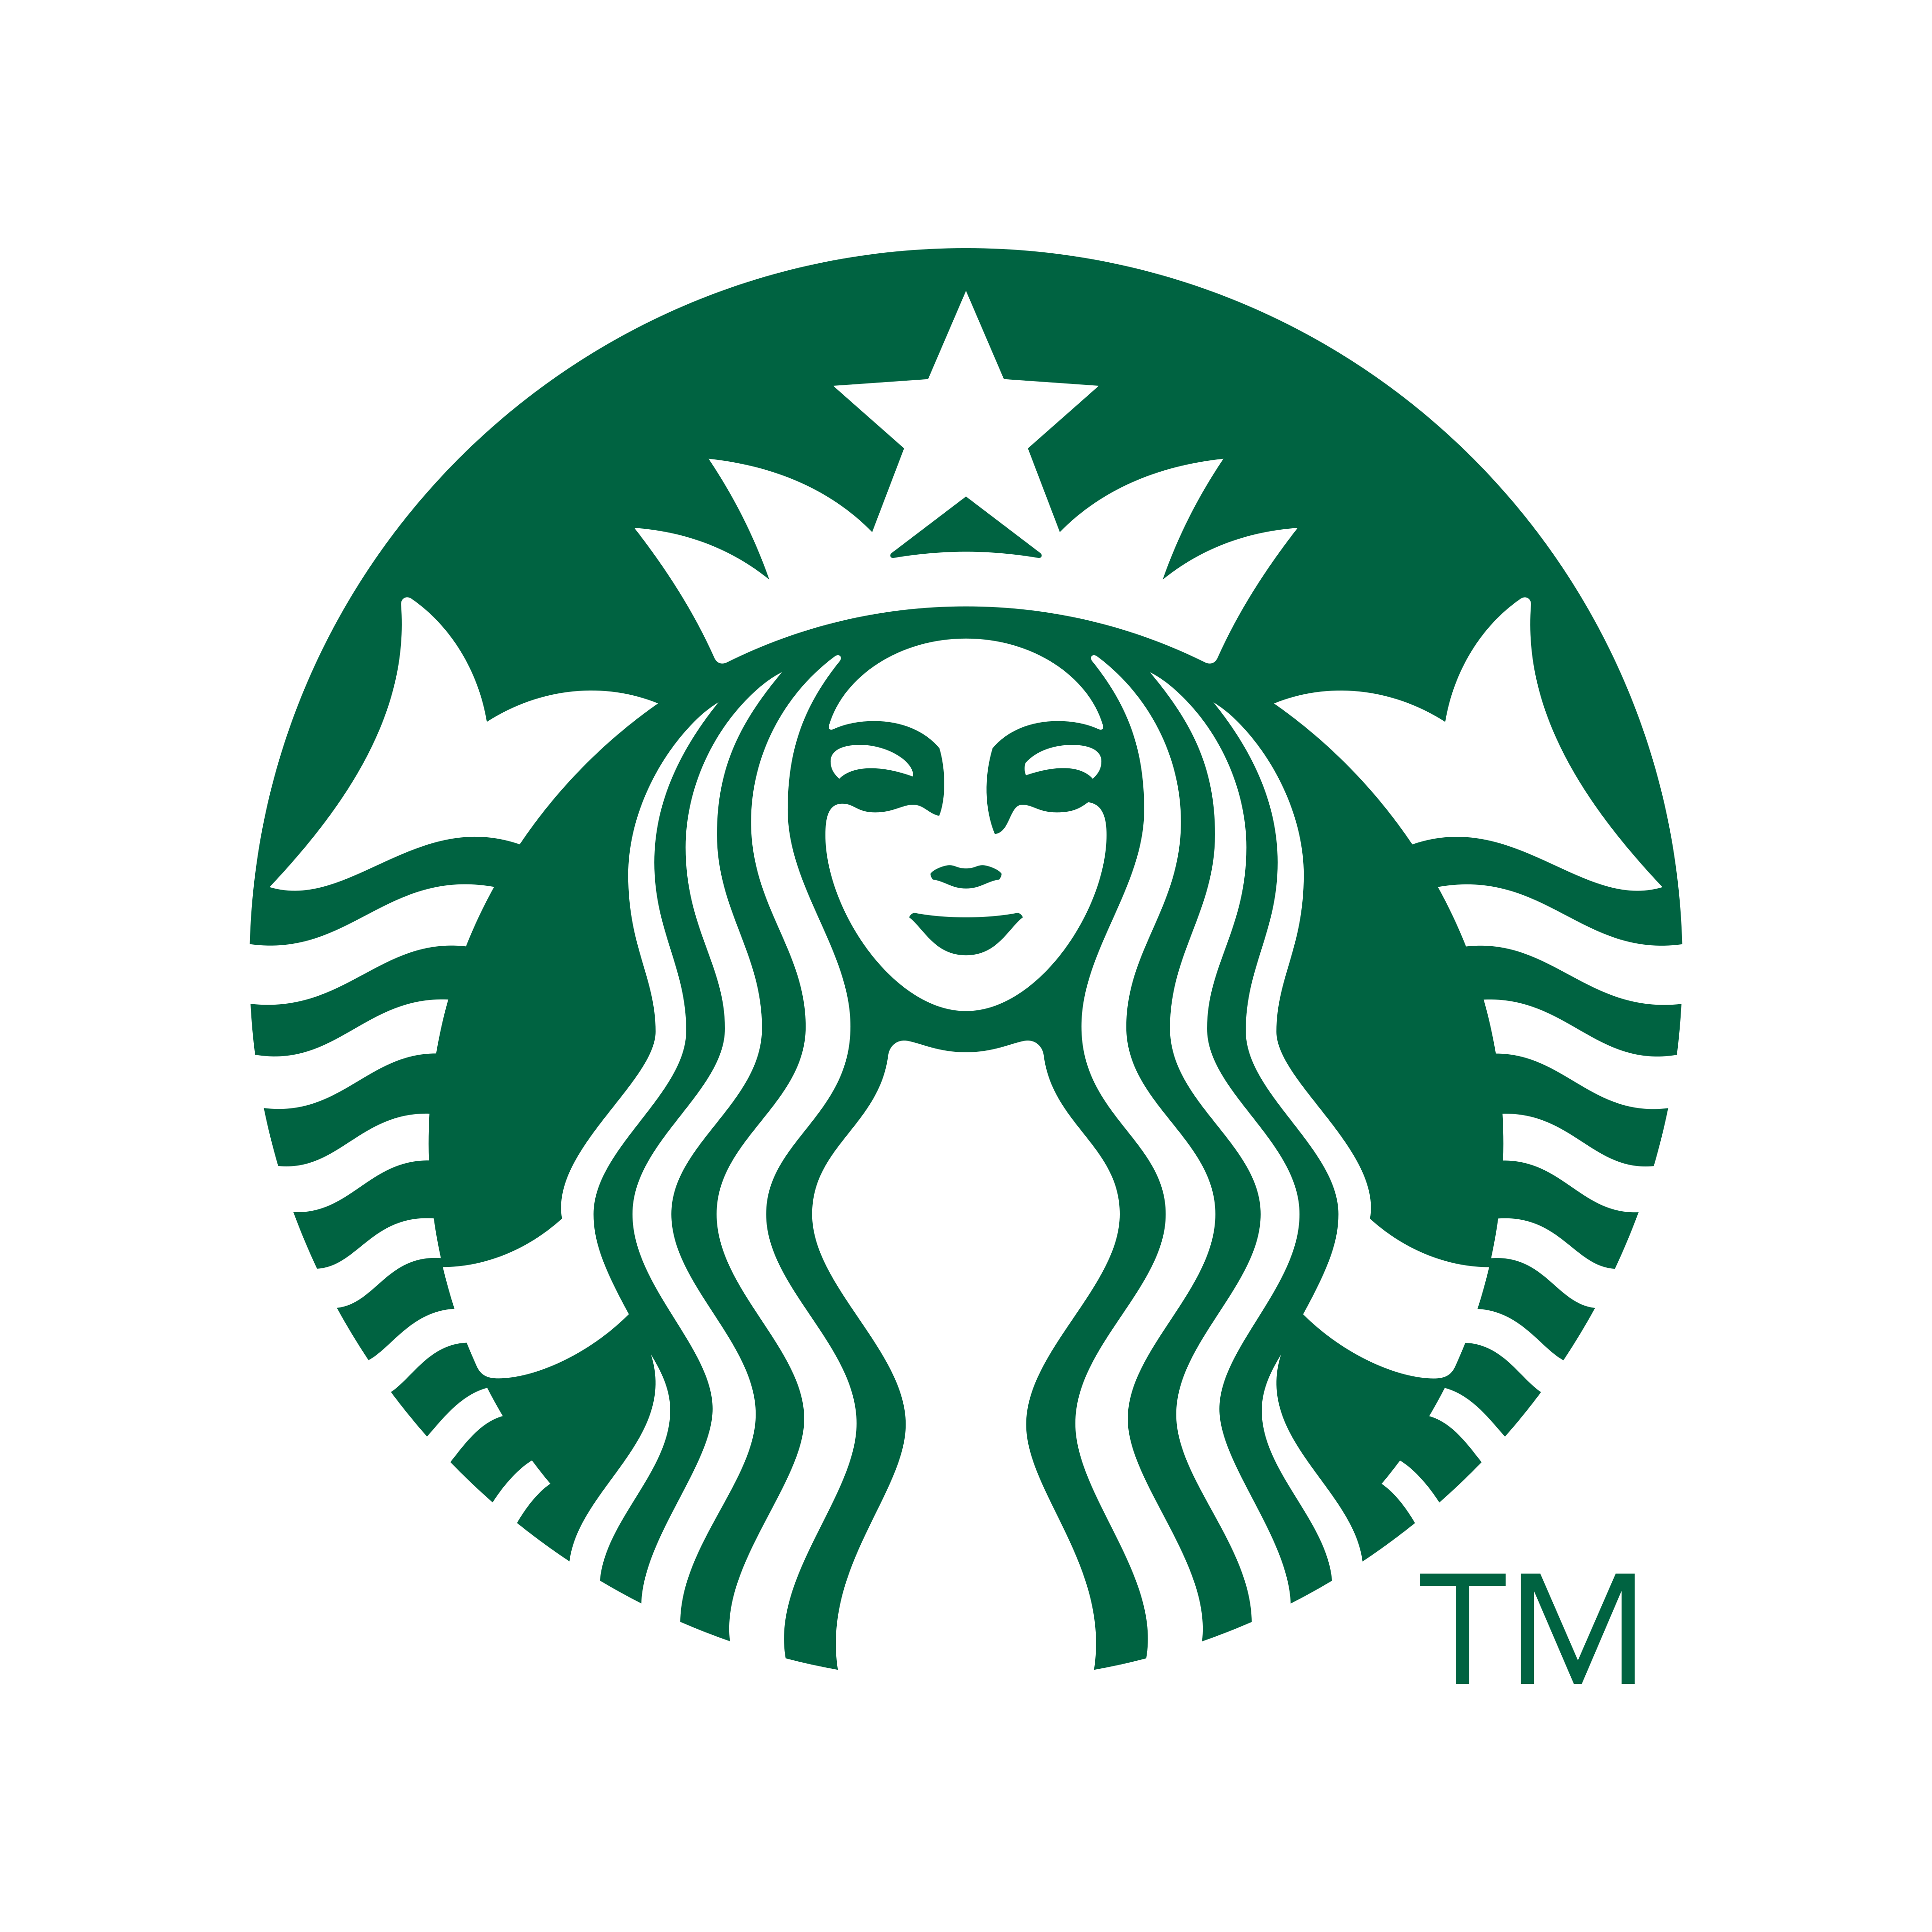 starbucks logo png and vector logo download logo download